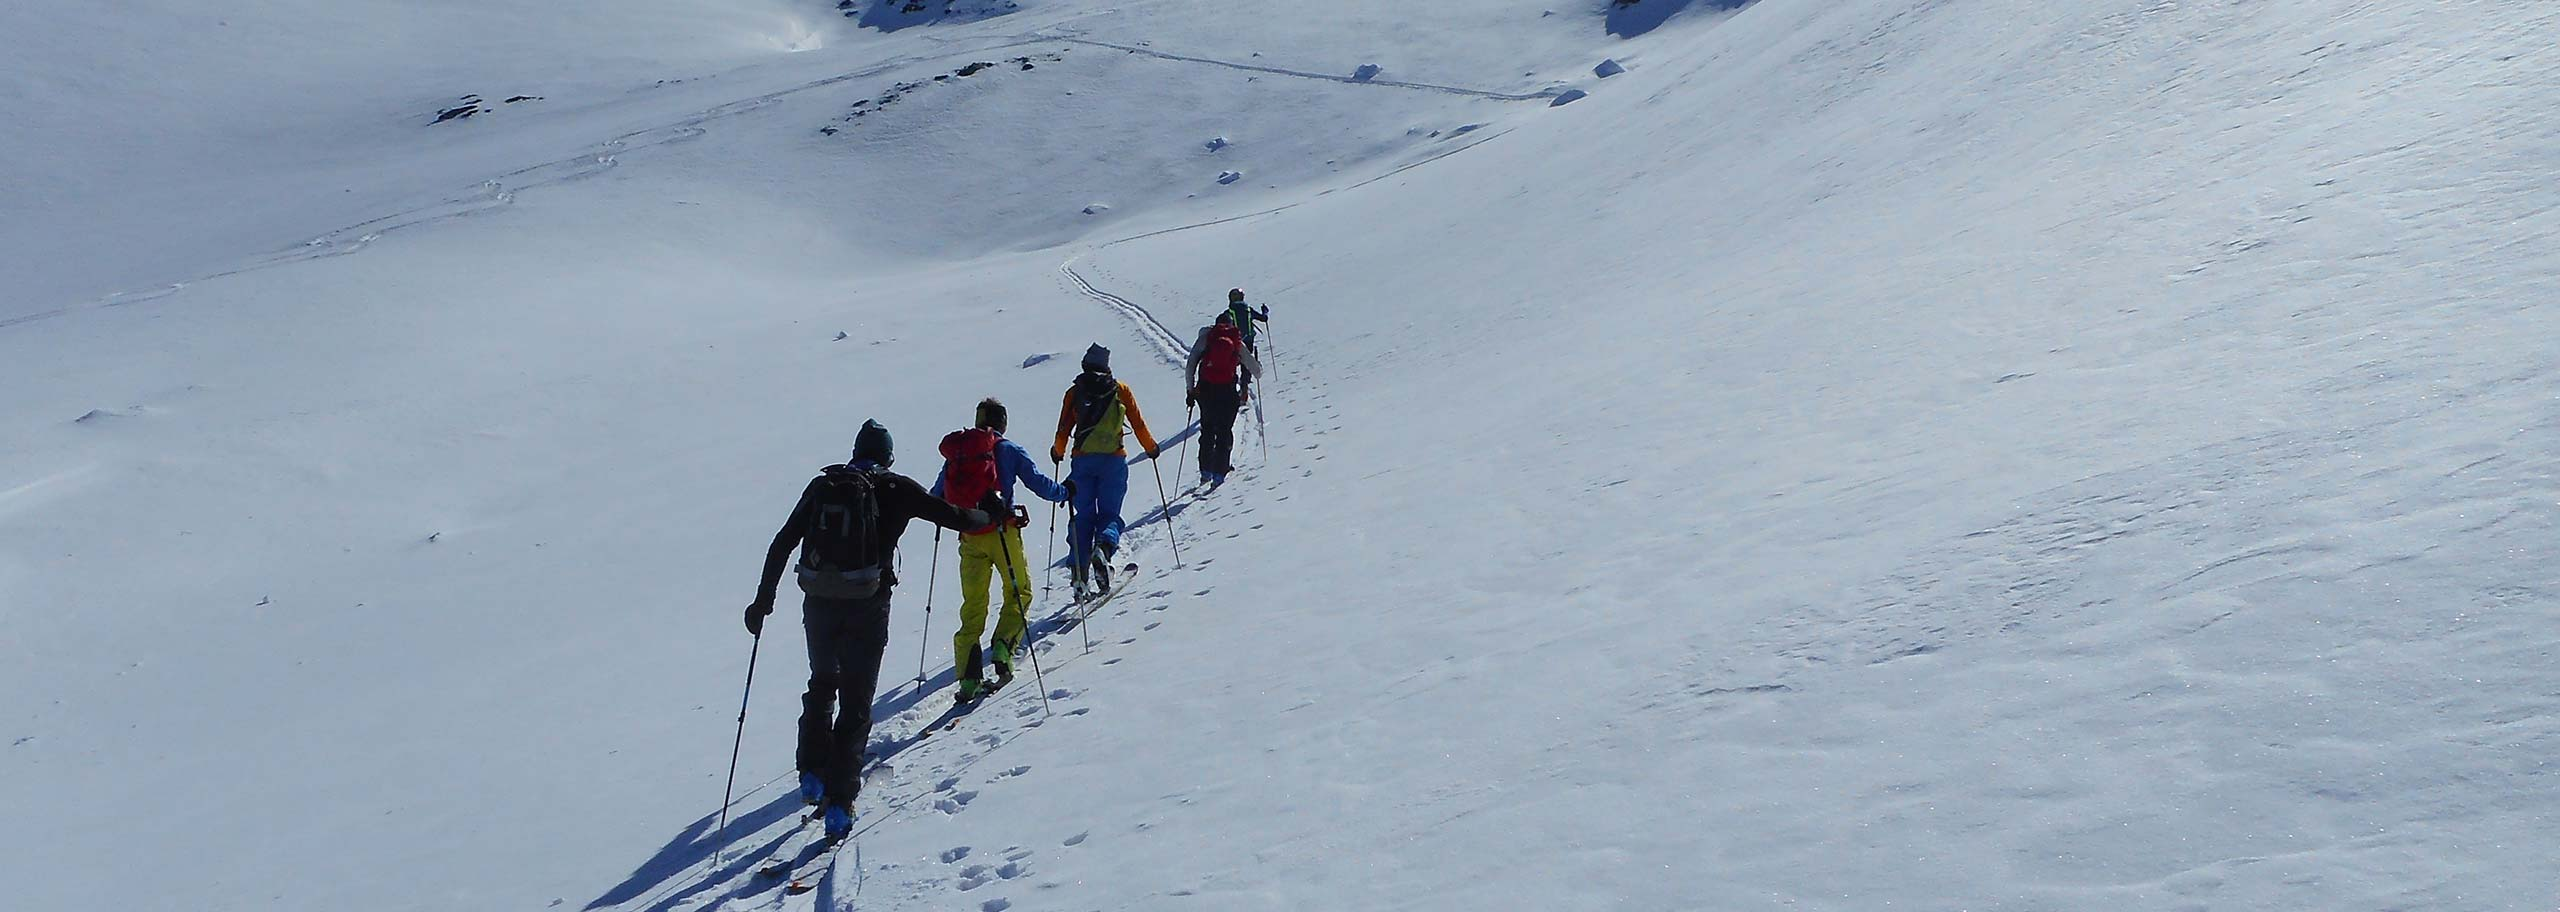 Ski Mountaineering with a Mountain Guide in Madonna di Campiglio